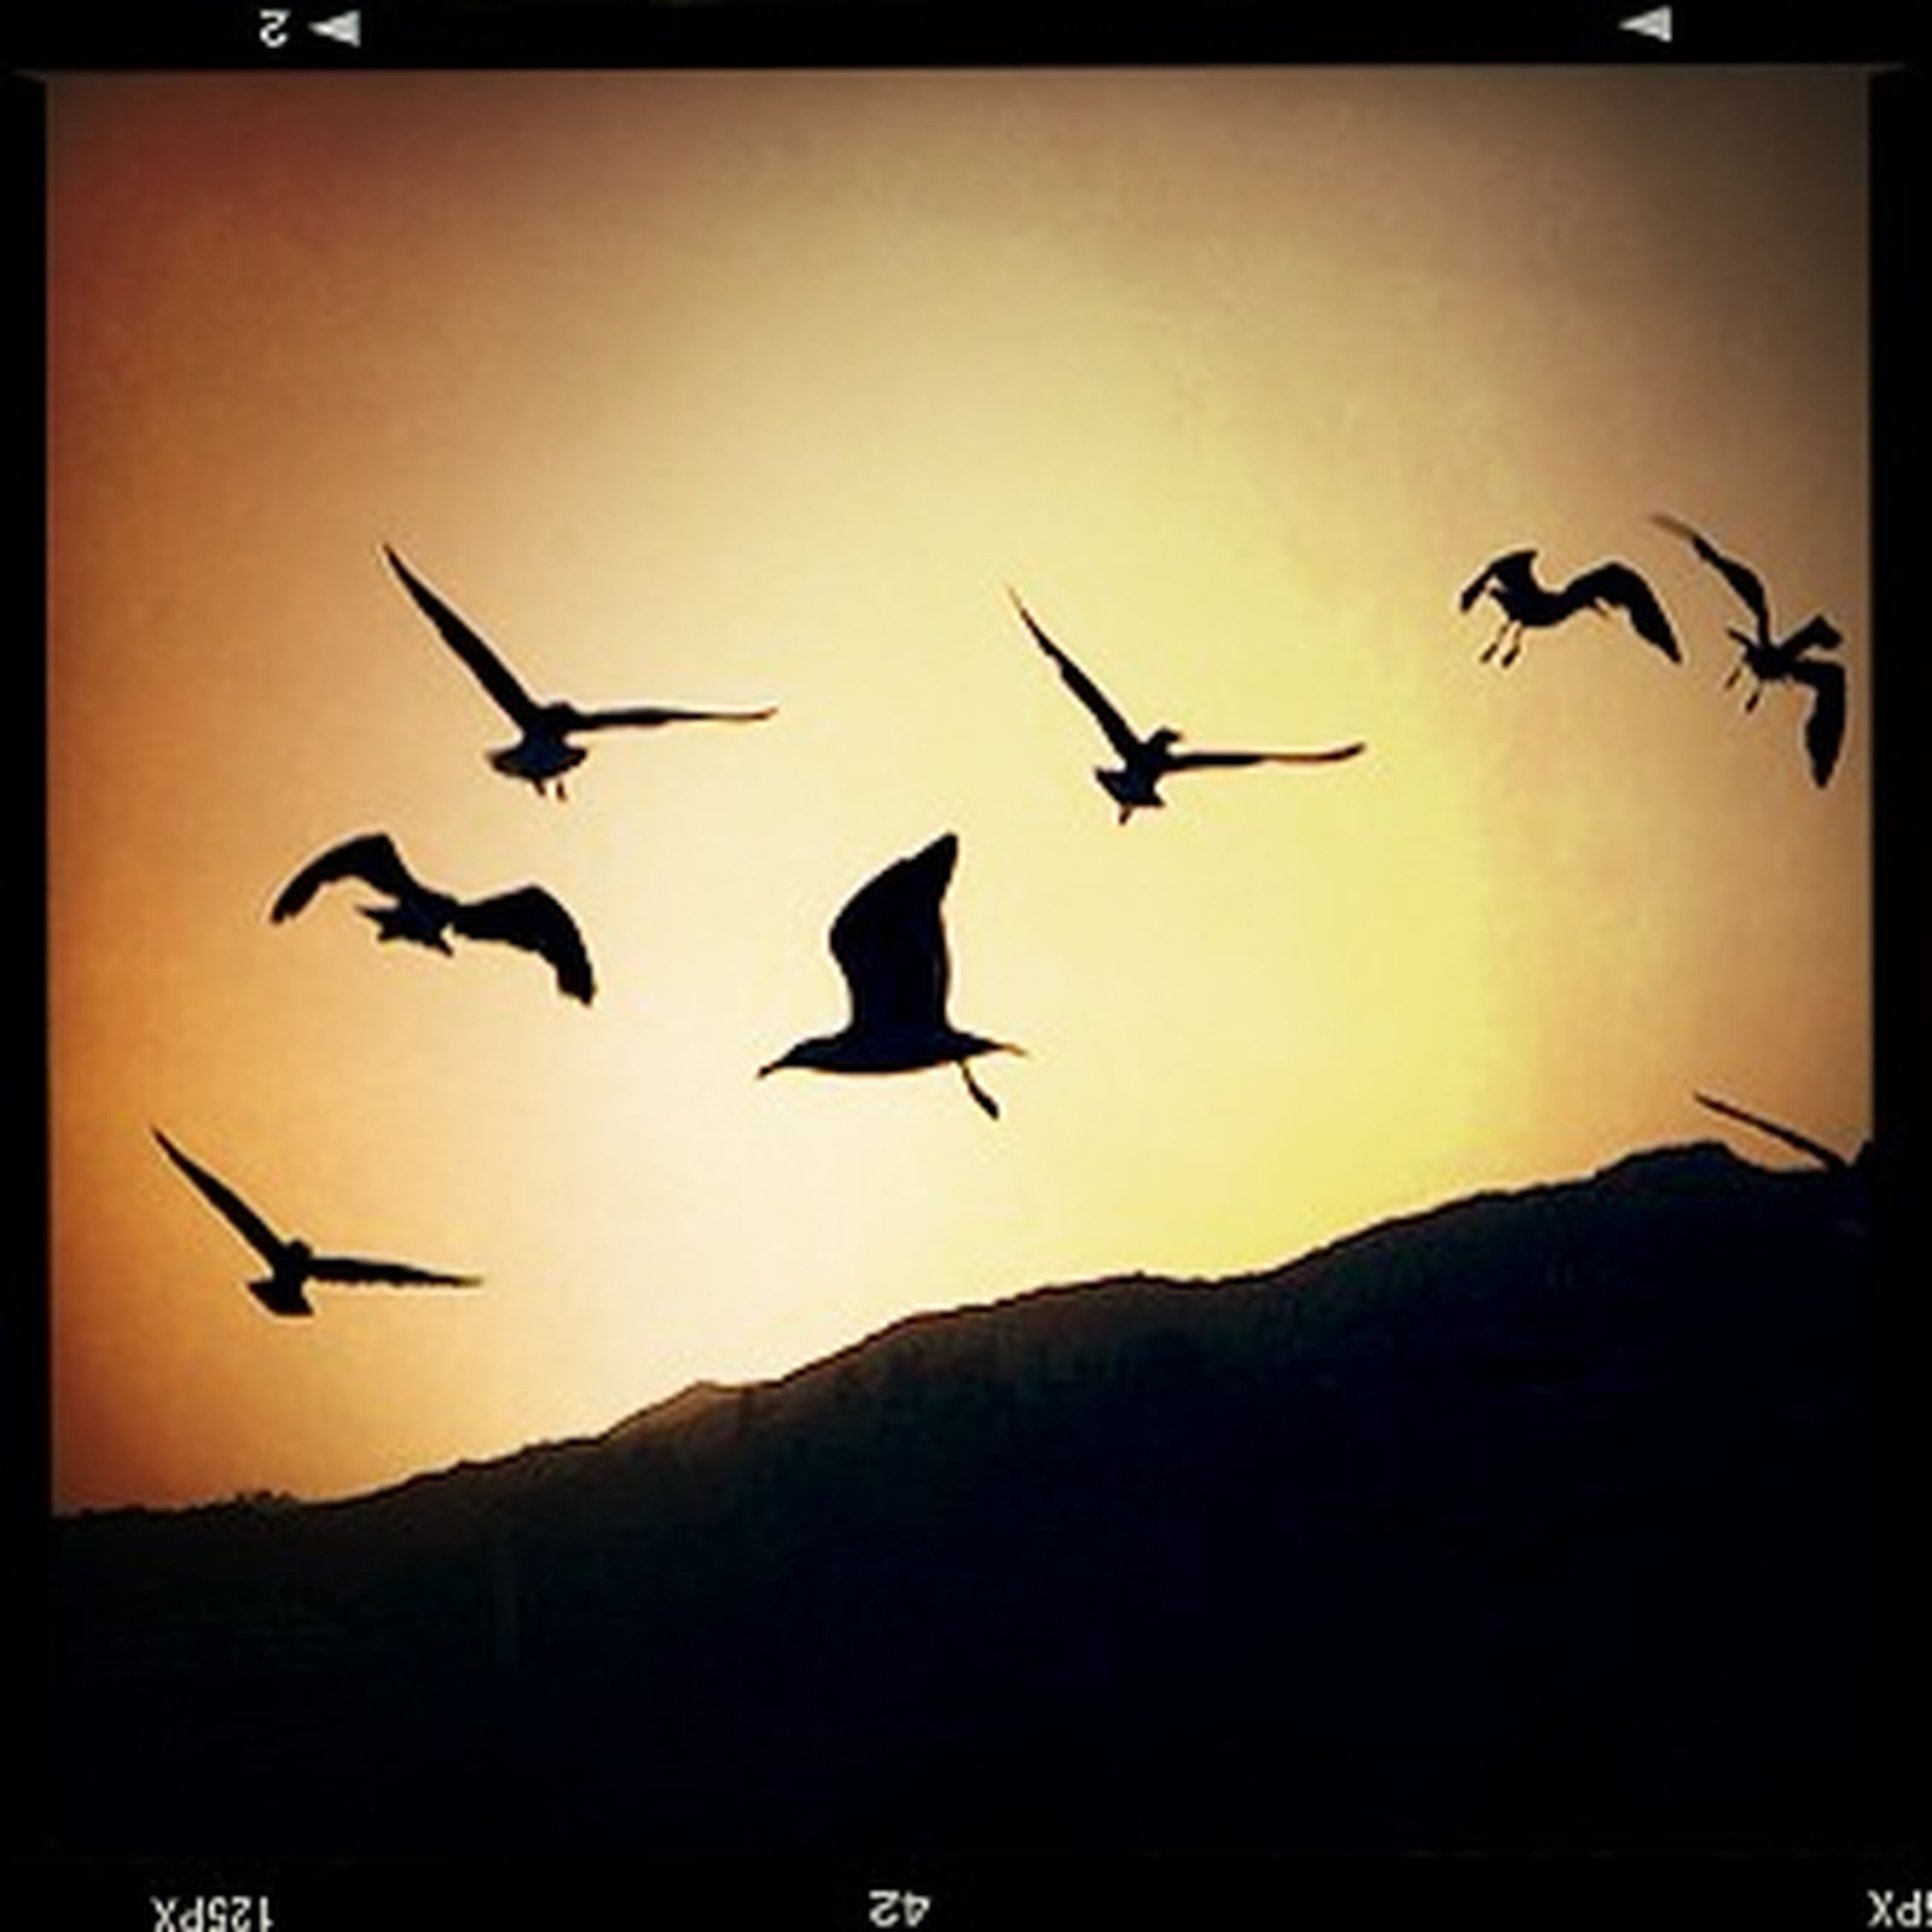 flying, transfer print, bird, auto post production filter, mid-air, animal themes, silhouette, wildlife, sunset, animals in the wild, spread wings, sky, airplane, low angle view, flight, air vehicle, dusk, nature, clear sky, outdoors